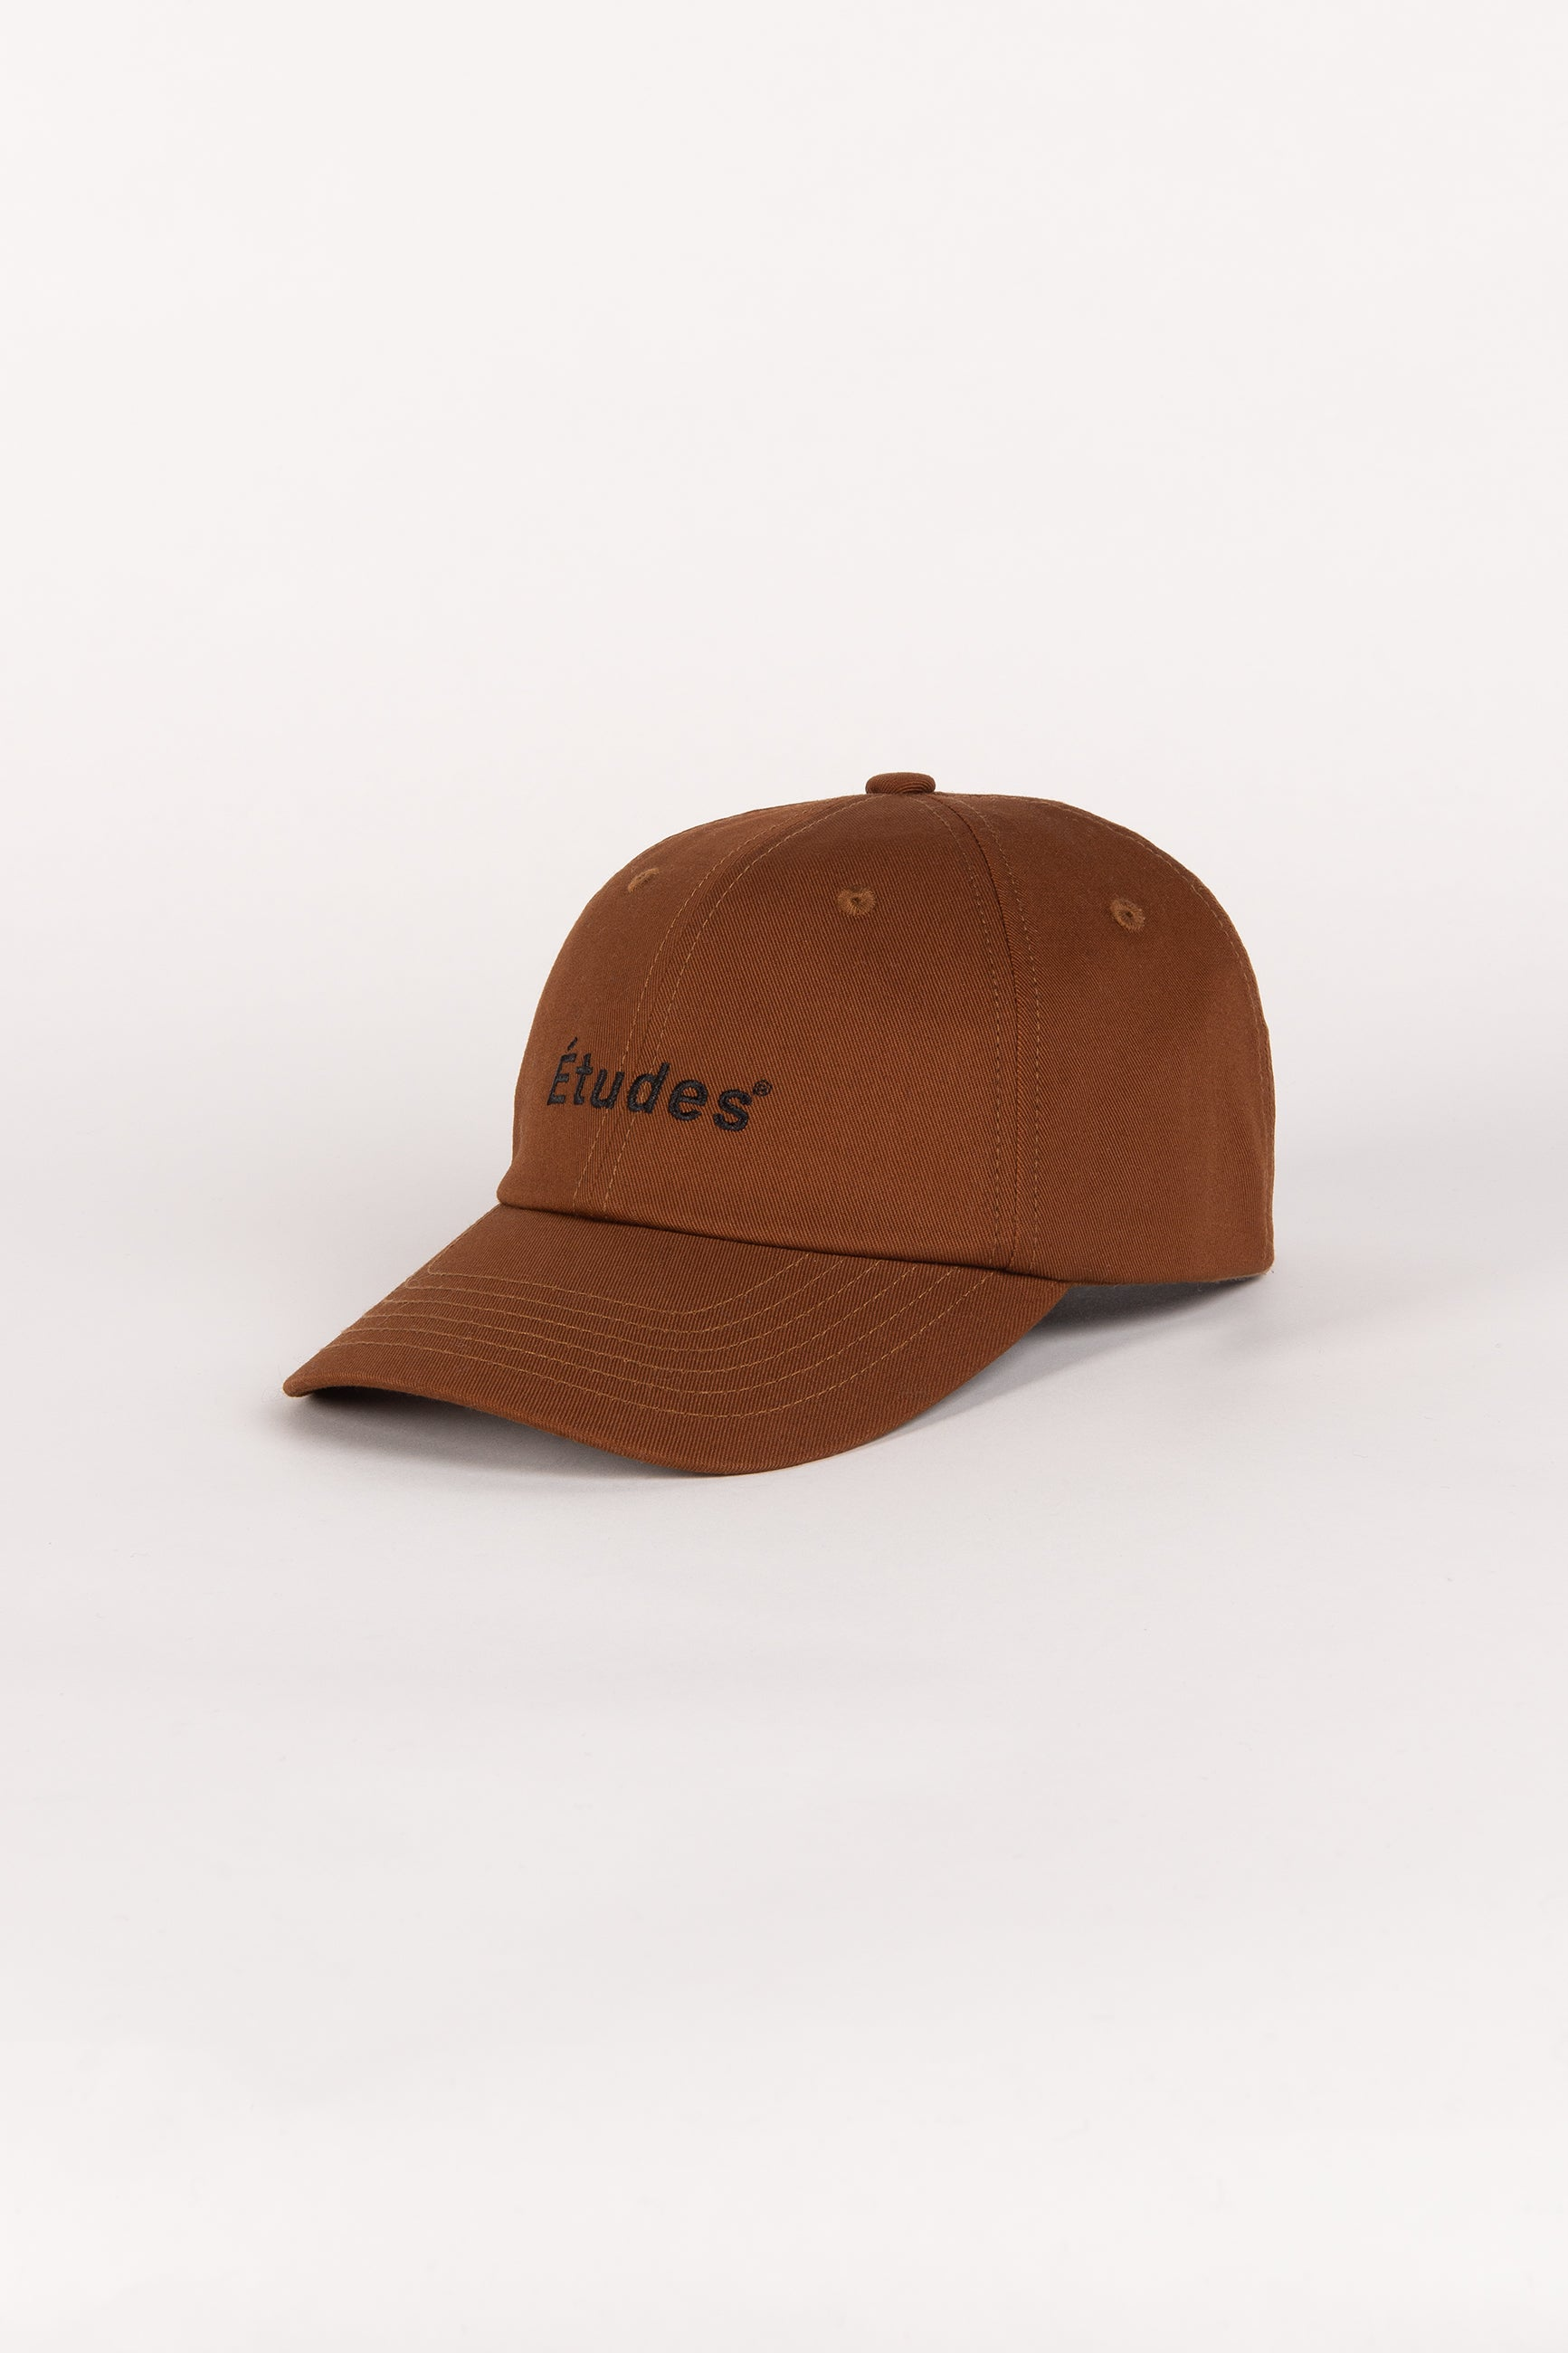 Études Booster Études Brown hat 1